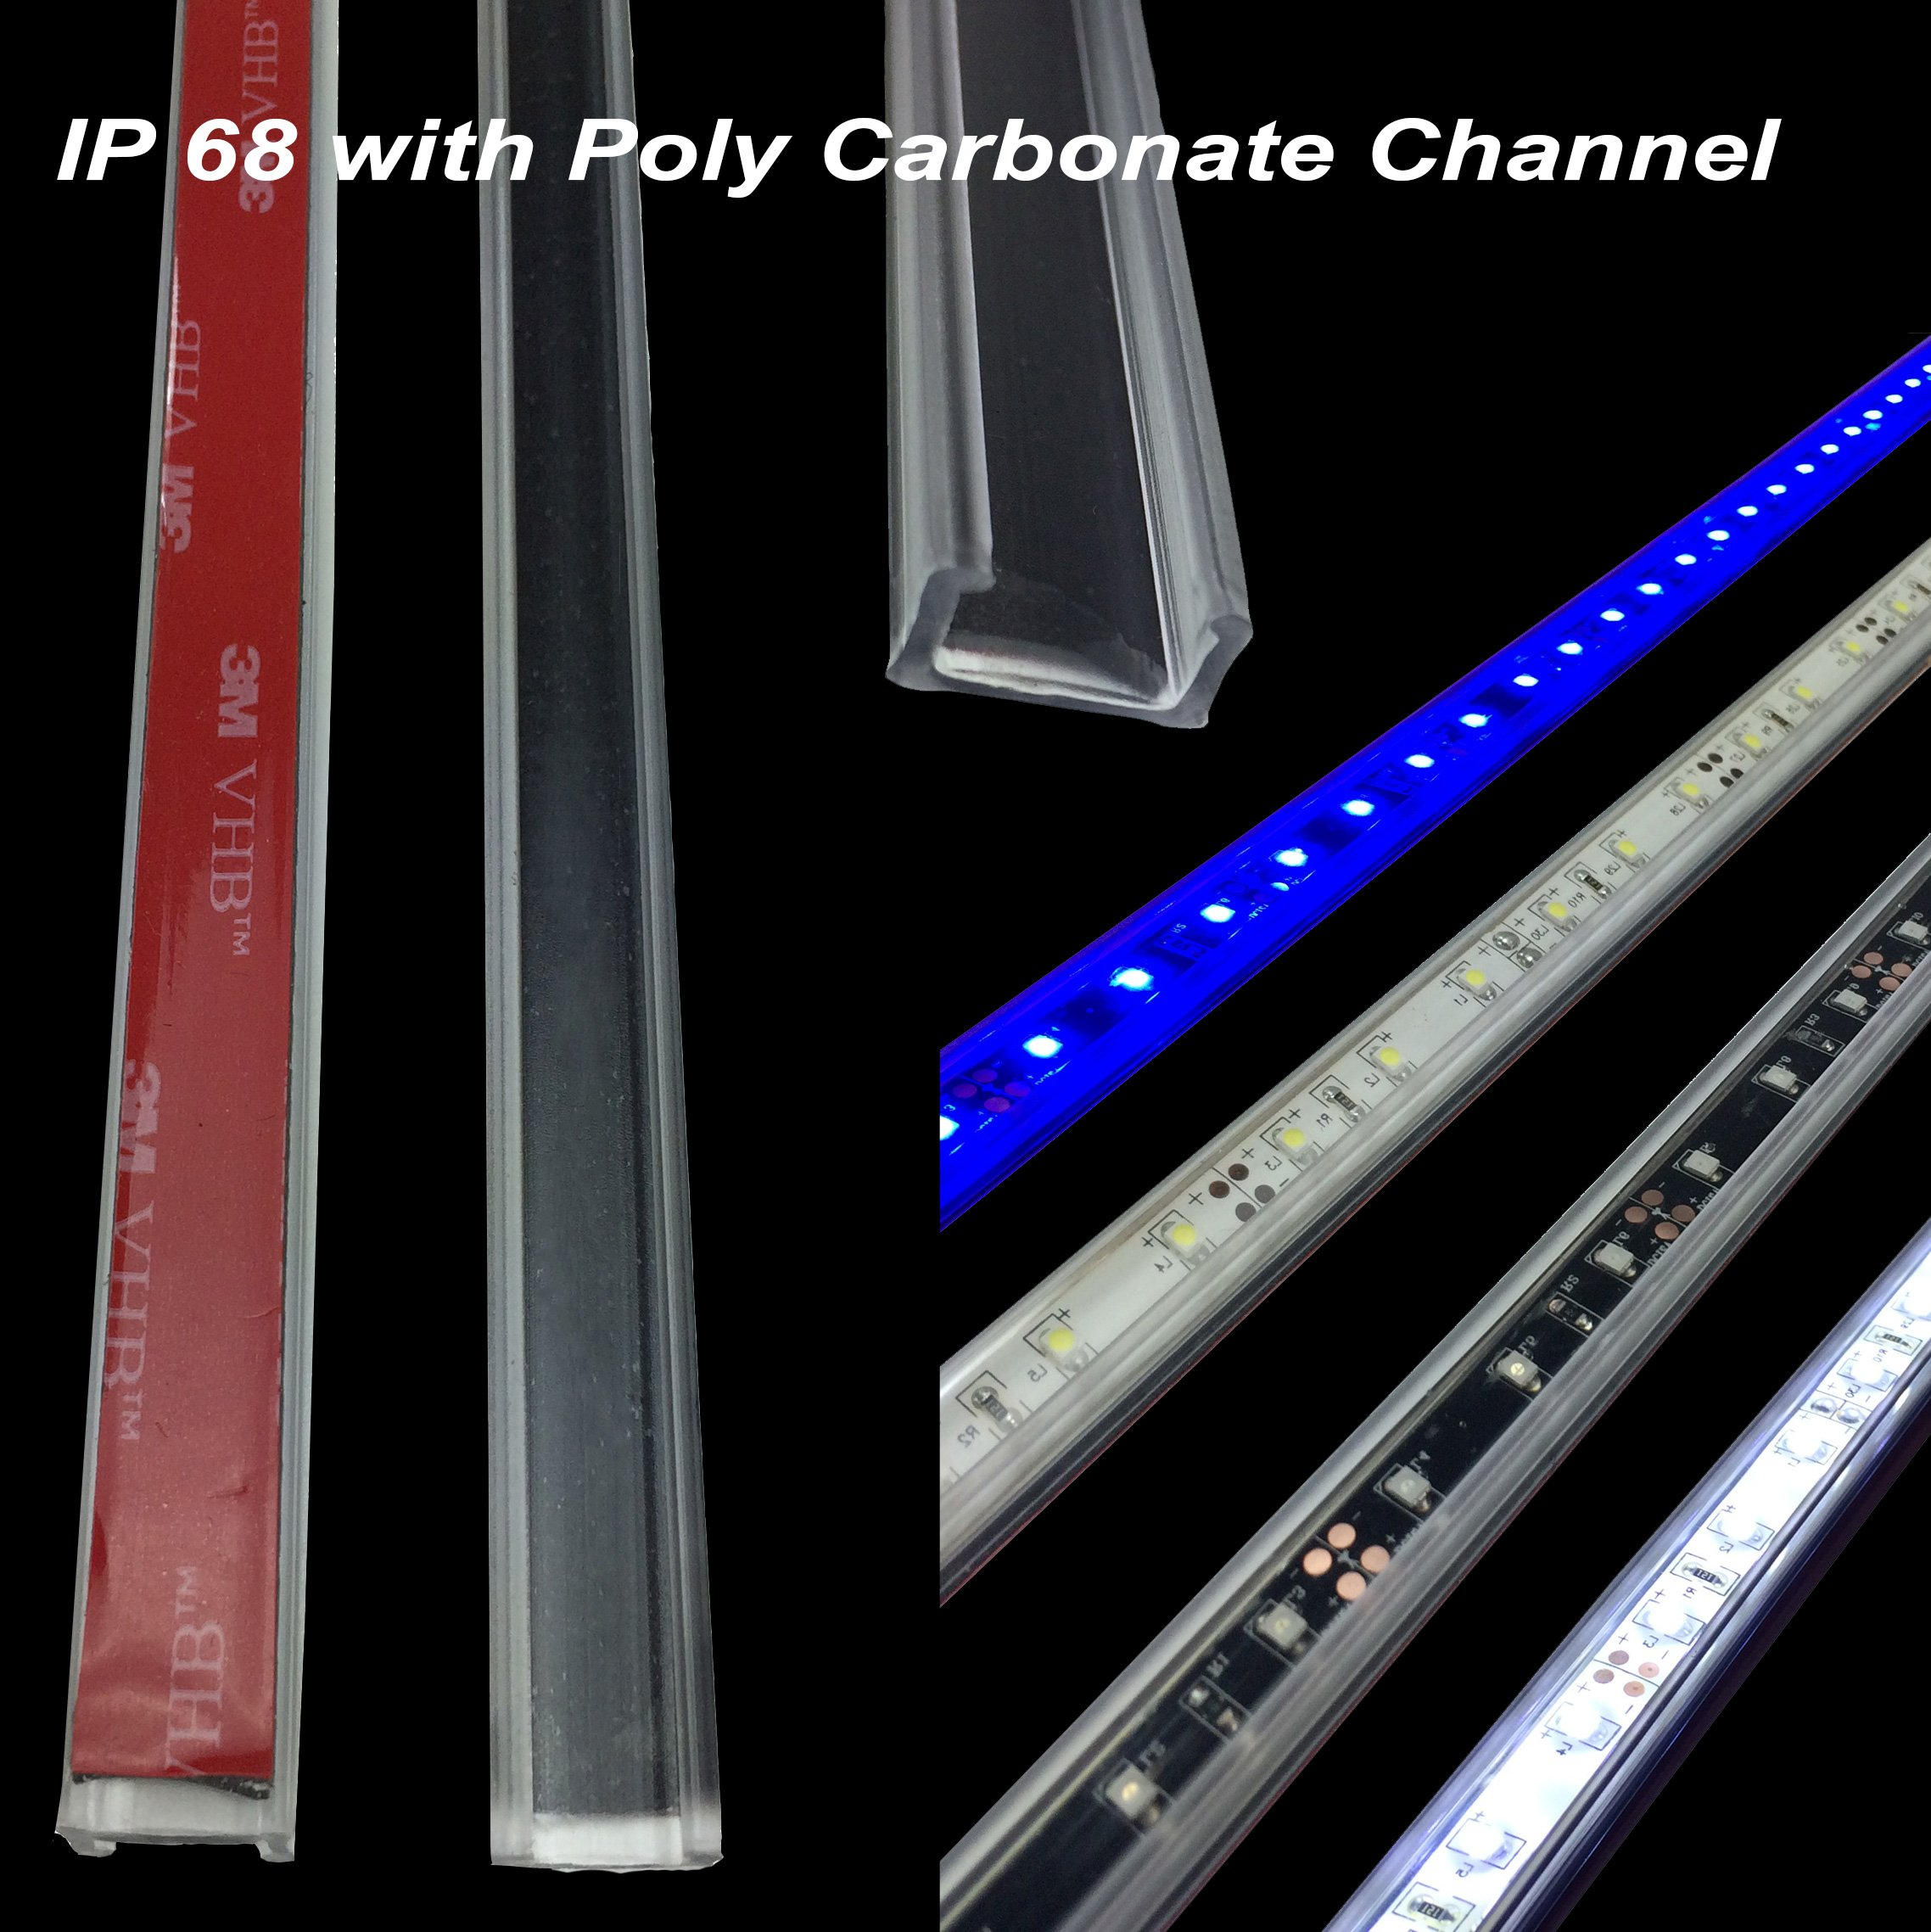 RecPro RV 12' Blue LED Awning Party Light 12V W/MOUNTING Channel - White PCB